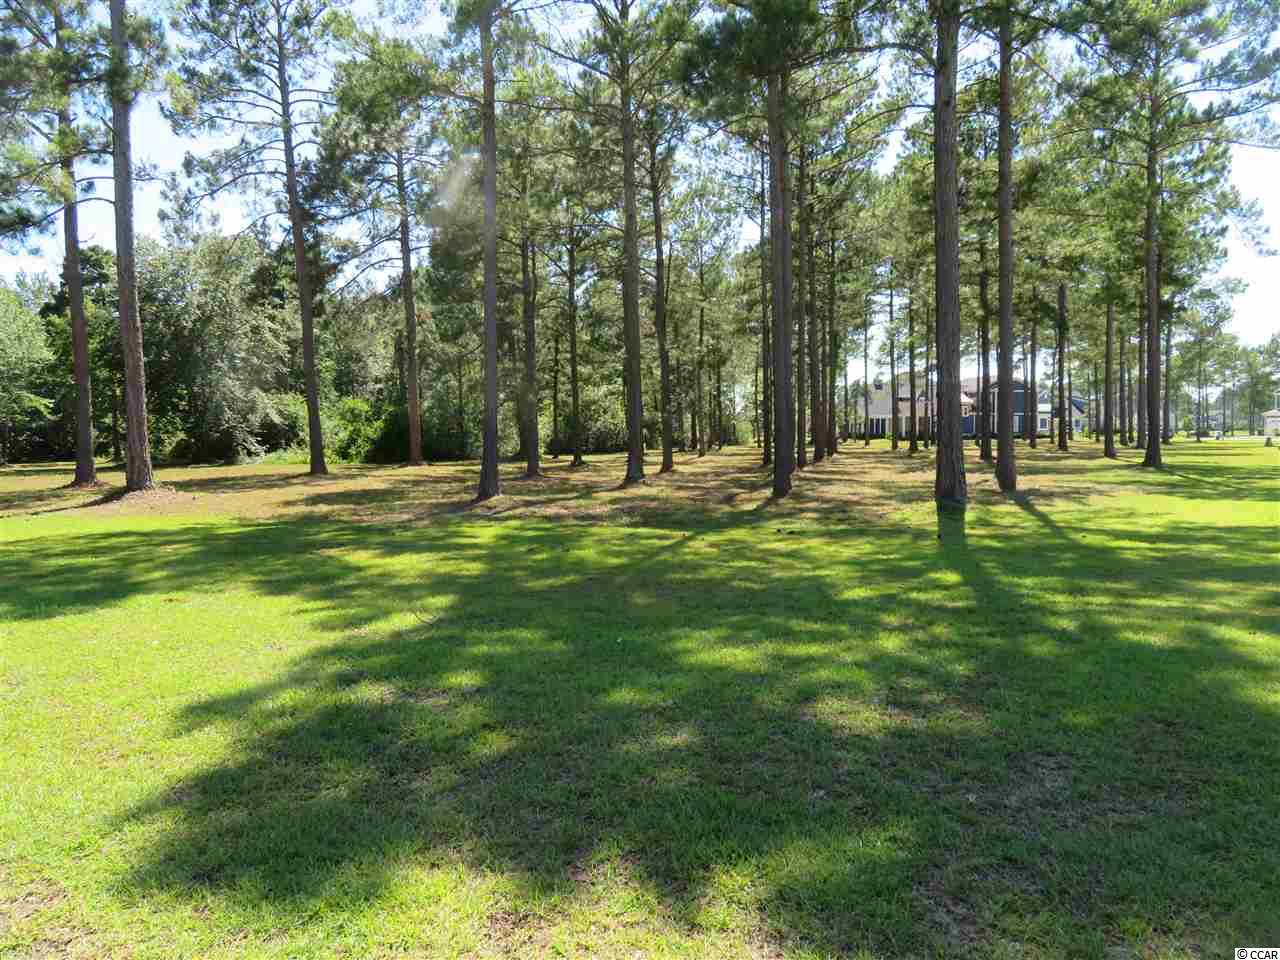 Buy and build on this corner lot in Waterbridge. This lot is very close to the state of the art amenities center with the largest residential community pool in the state of SC with junior olympic-sized swimming lanes and a jetted spa plus much more! Build your custom dream home, only a short walk away from the Village style clubhouse and 24 hour fitness center. Waterbridge has over 60 acres of lakes within the community for kayaking, canoeing, row boating. The amenities also include tennis courts, pickleball courts, basketball, sand volleyball, and bocce ball.  This is the time to buy and build in the luxurious gated community of Waterbridge.